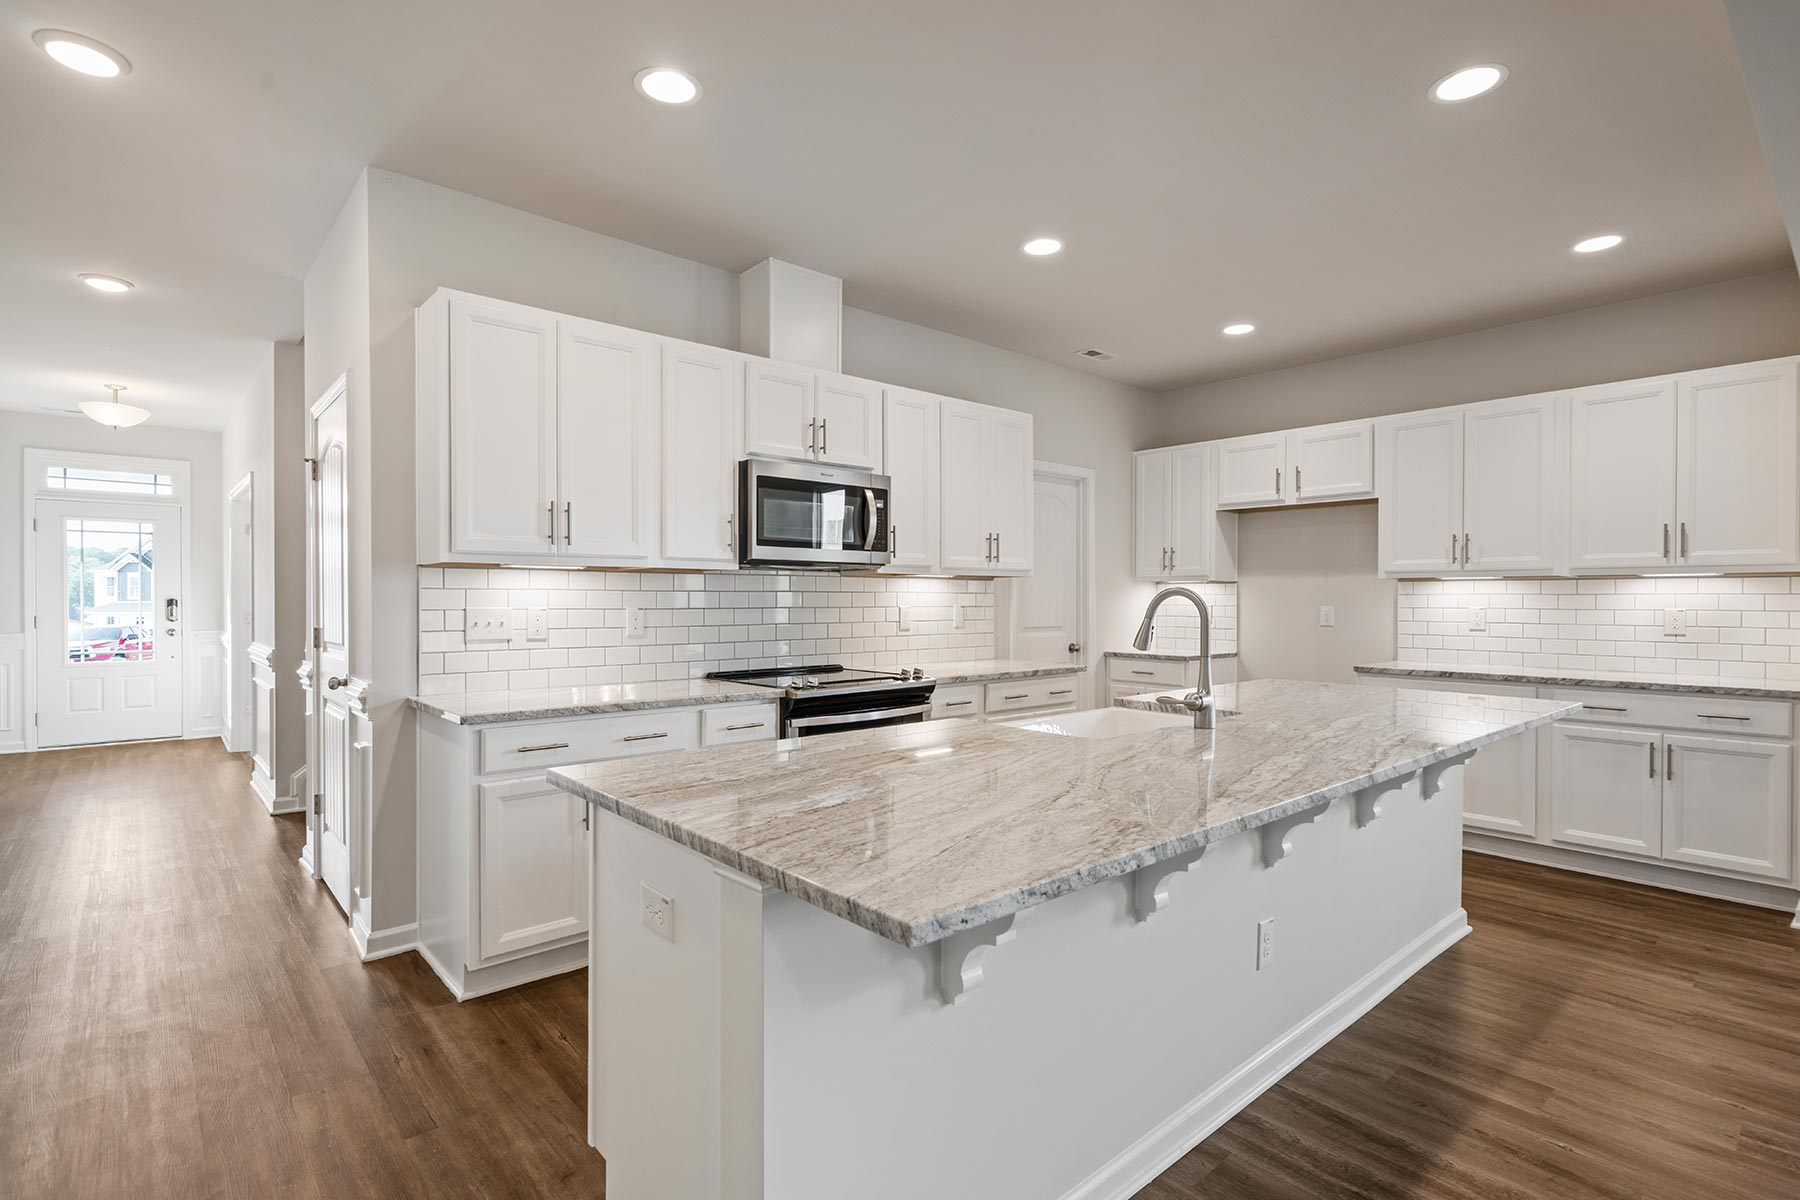 Winston Plan Kitchen at Oak Park in Garner North Carolina by Mattamy Homes